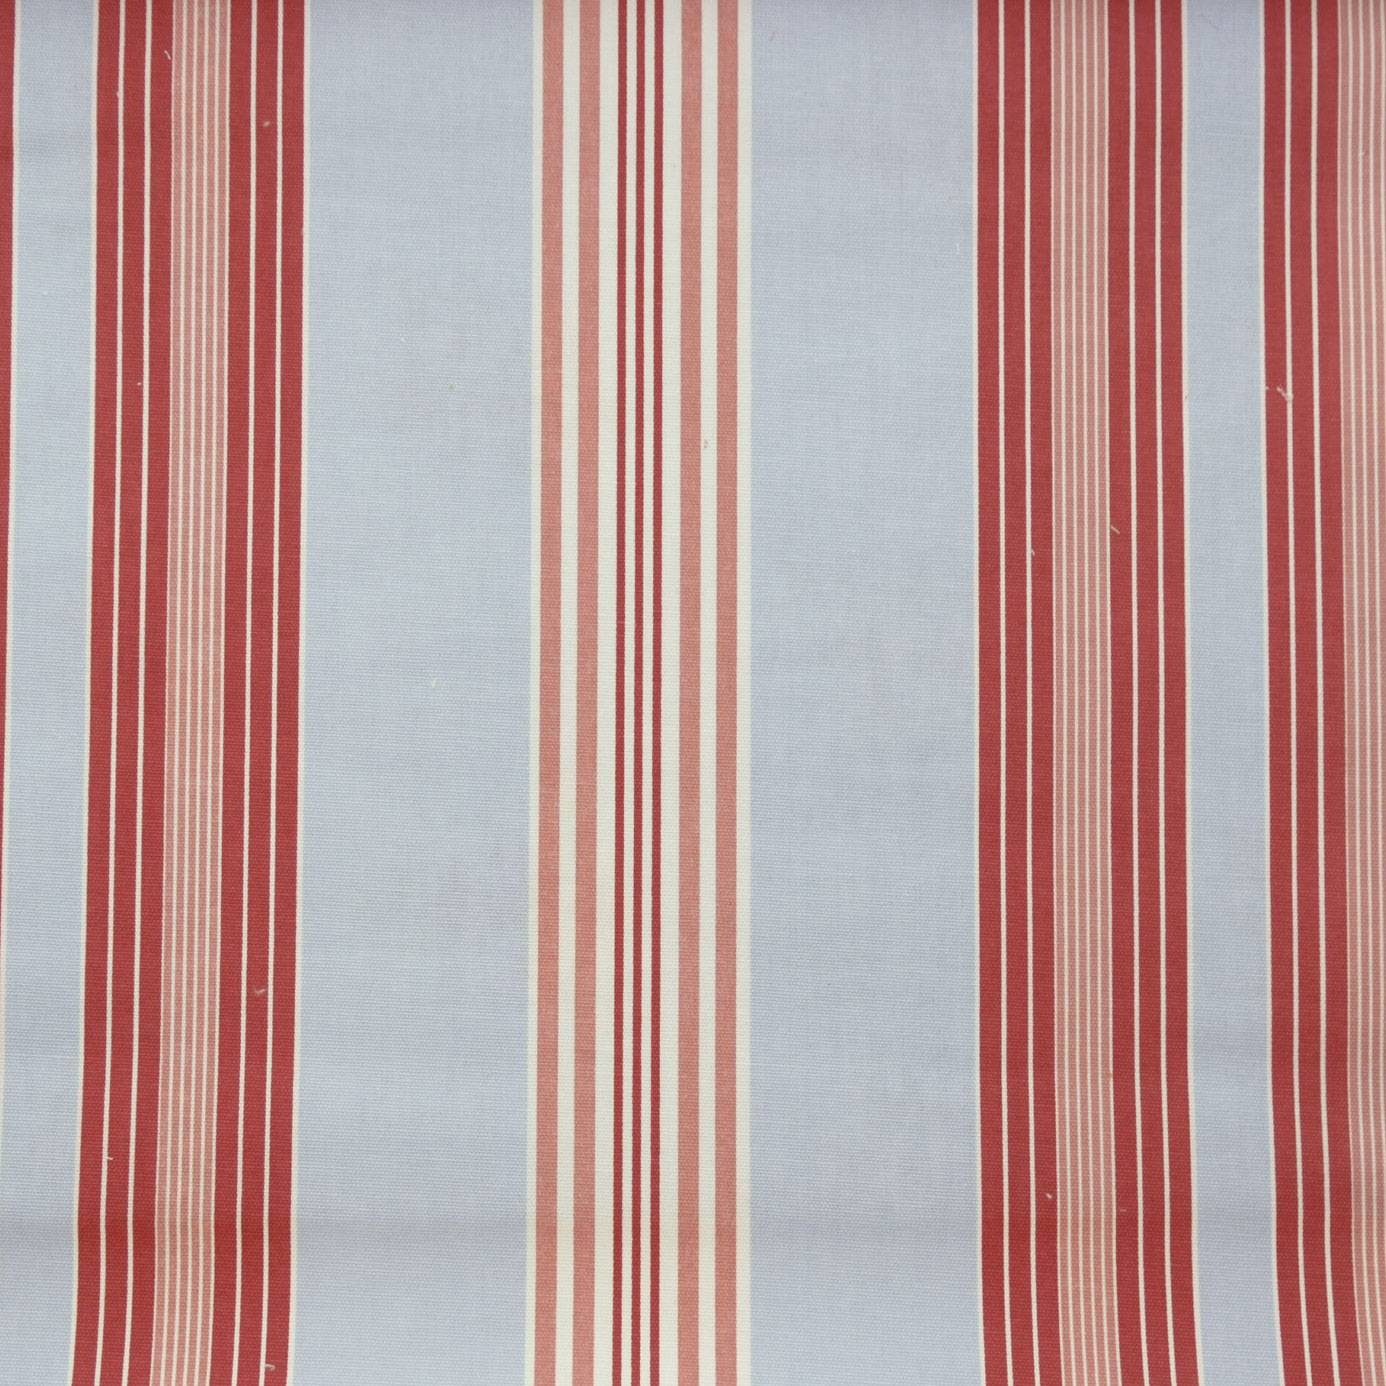 Curtains in lulu stripe fabric powder blue f0126 04 - Modern fabrics for curtains ...